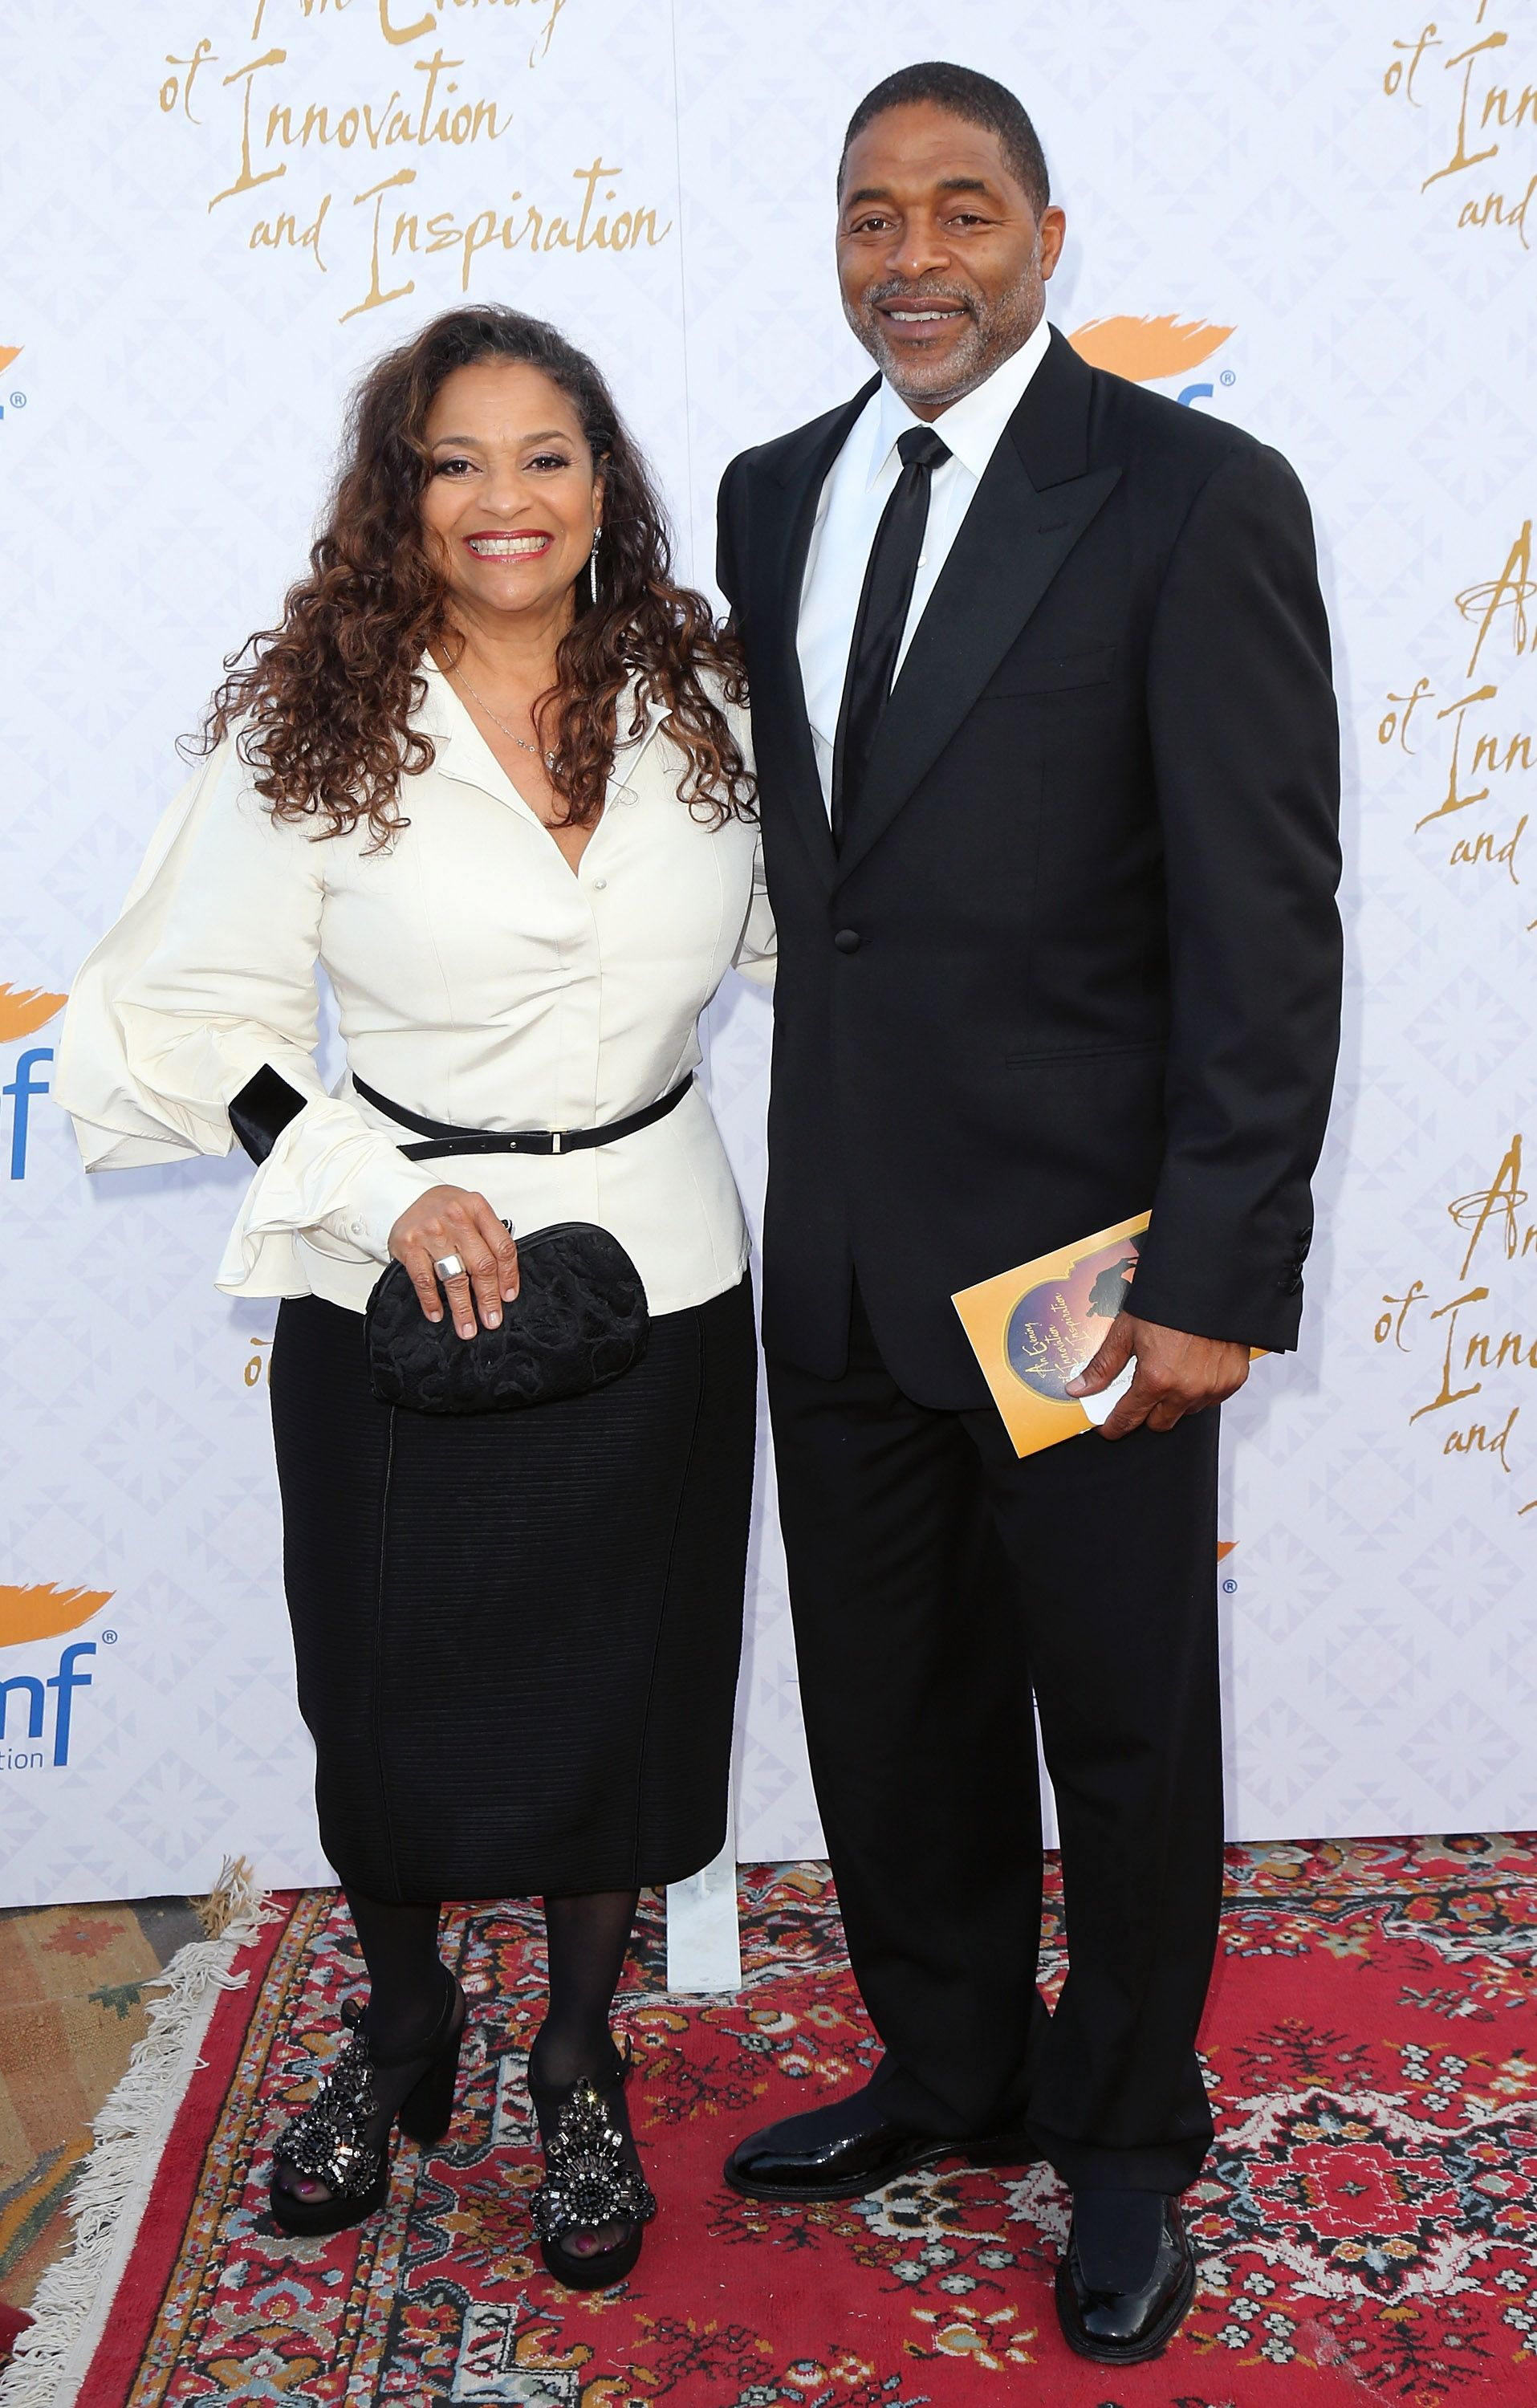 Debbie Allen and Norm Nixon attend the 10th Annual Alfred Mann Foundation Gala in the Robinsons-May Lot on October 13, 2013 in Beverly Hills, California. | Source: Getty Images